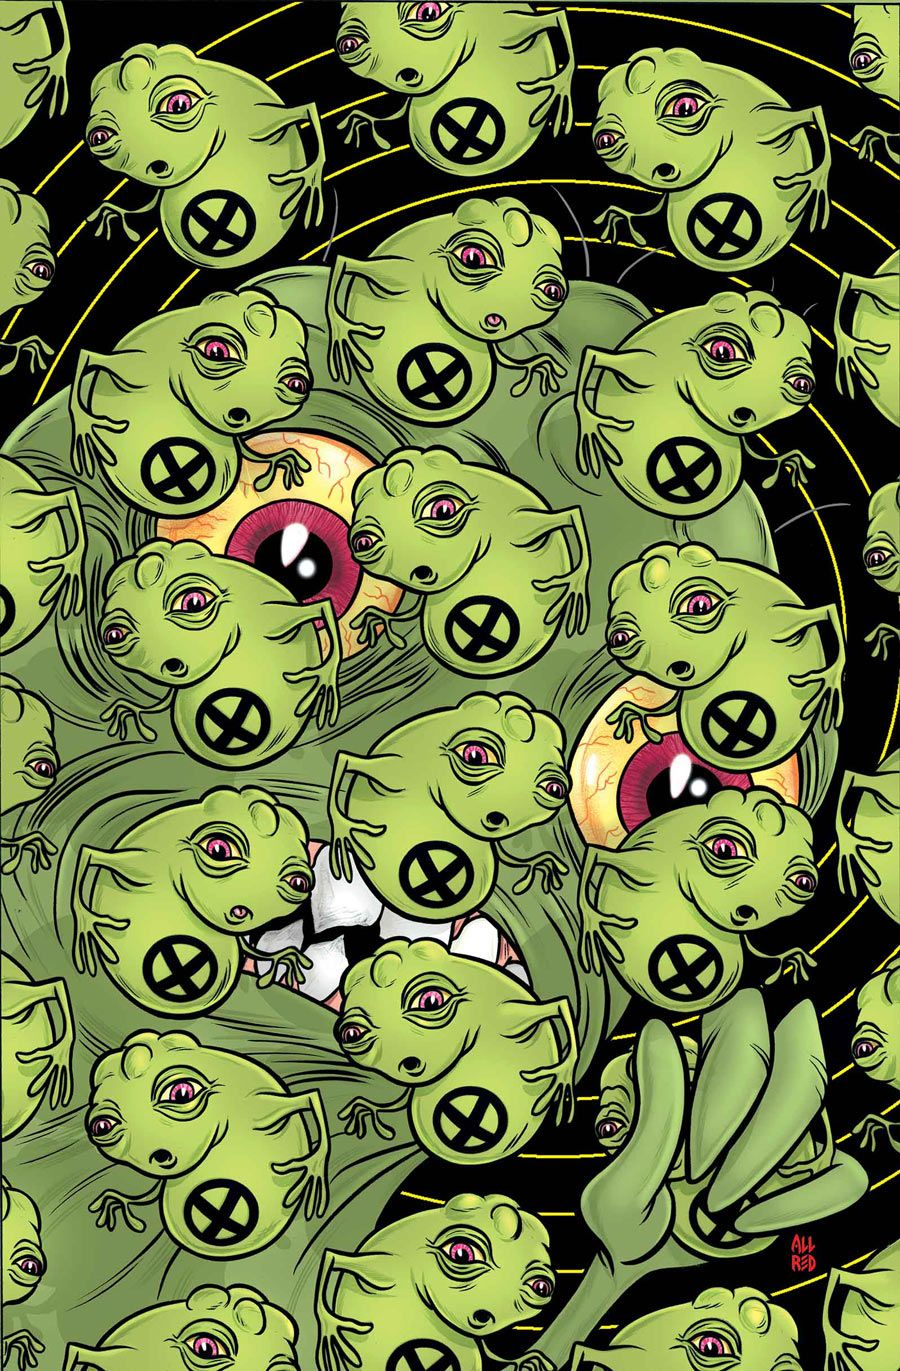 Doop by Mike Allred